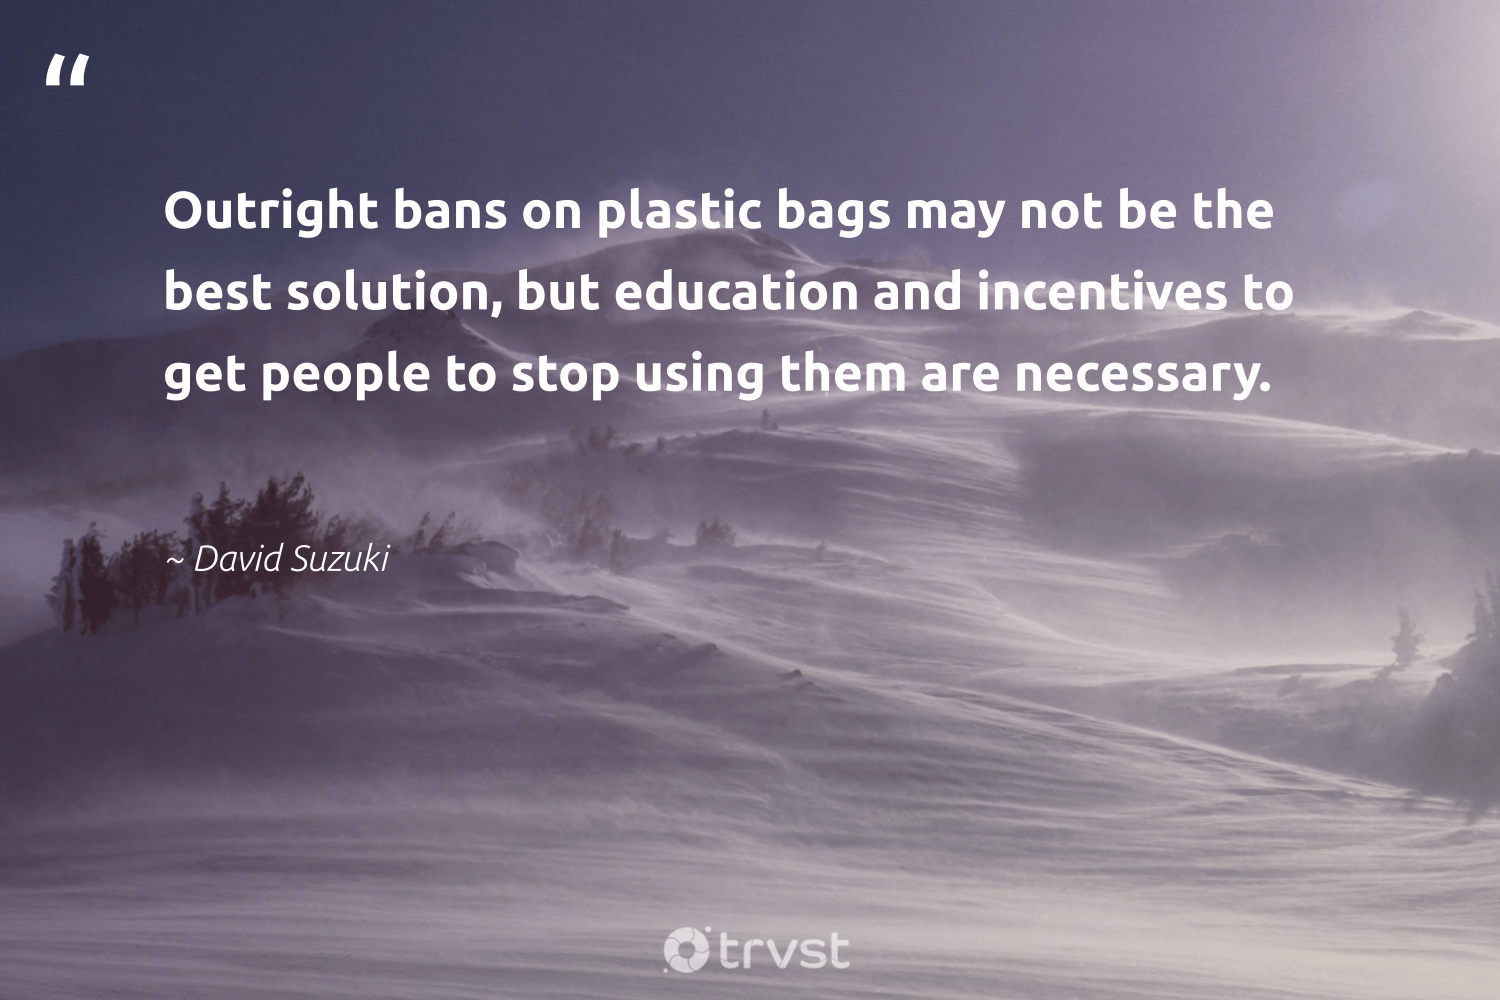 """""""Outright bans on plastic bags may not be the best solution, but education and incentives to get people to stop using them are necessary.""""  - David Suzuki #trvst #quotes #plasticwaste #plastic #education #scrapplastic #dogood #waste #socialchange #plasticpollutes #waronwaste #thinkgreen"""